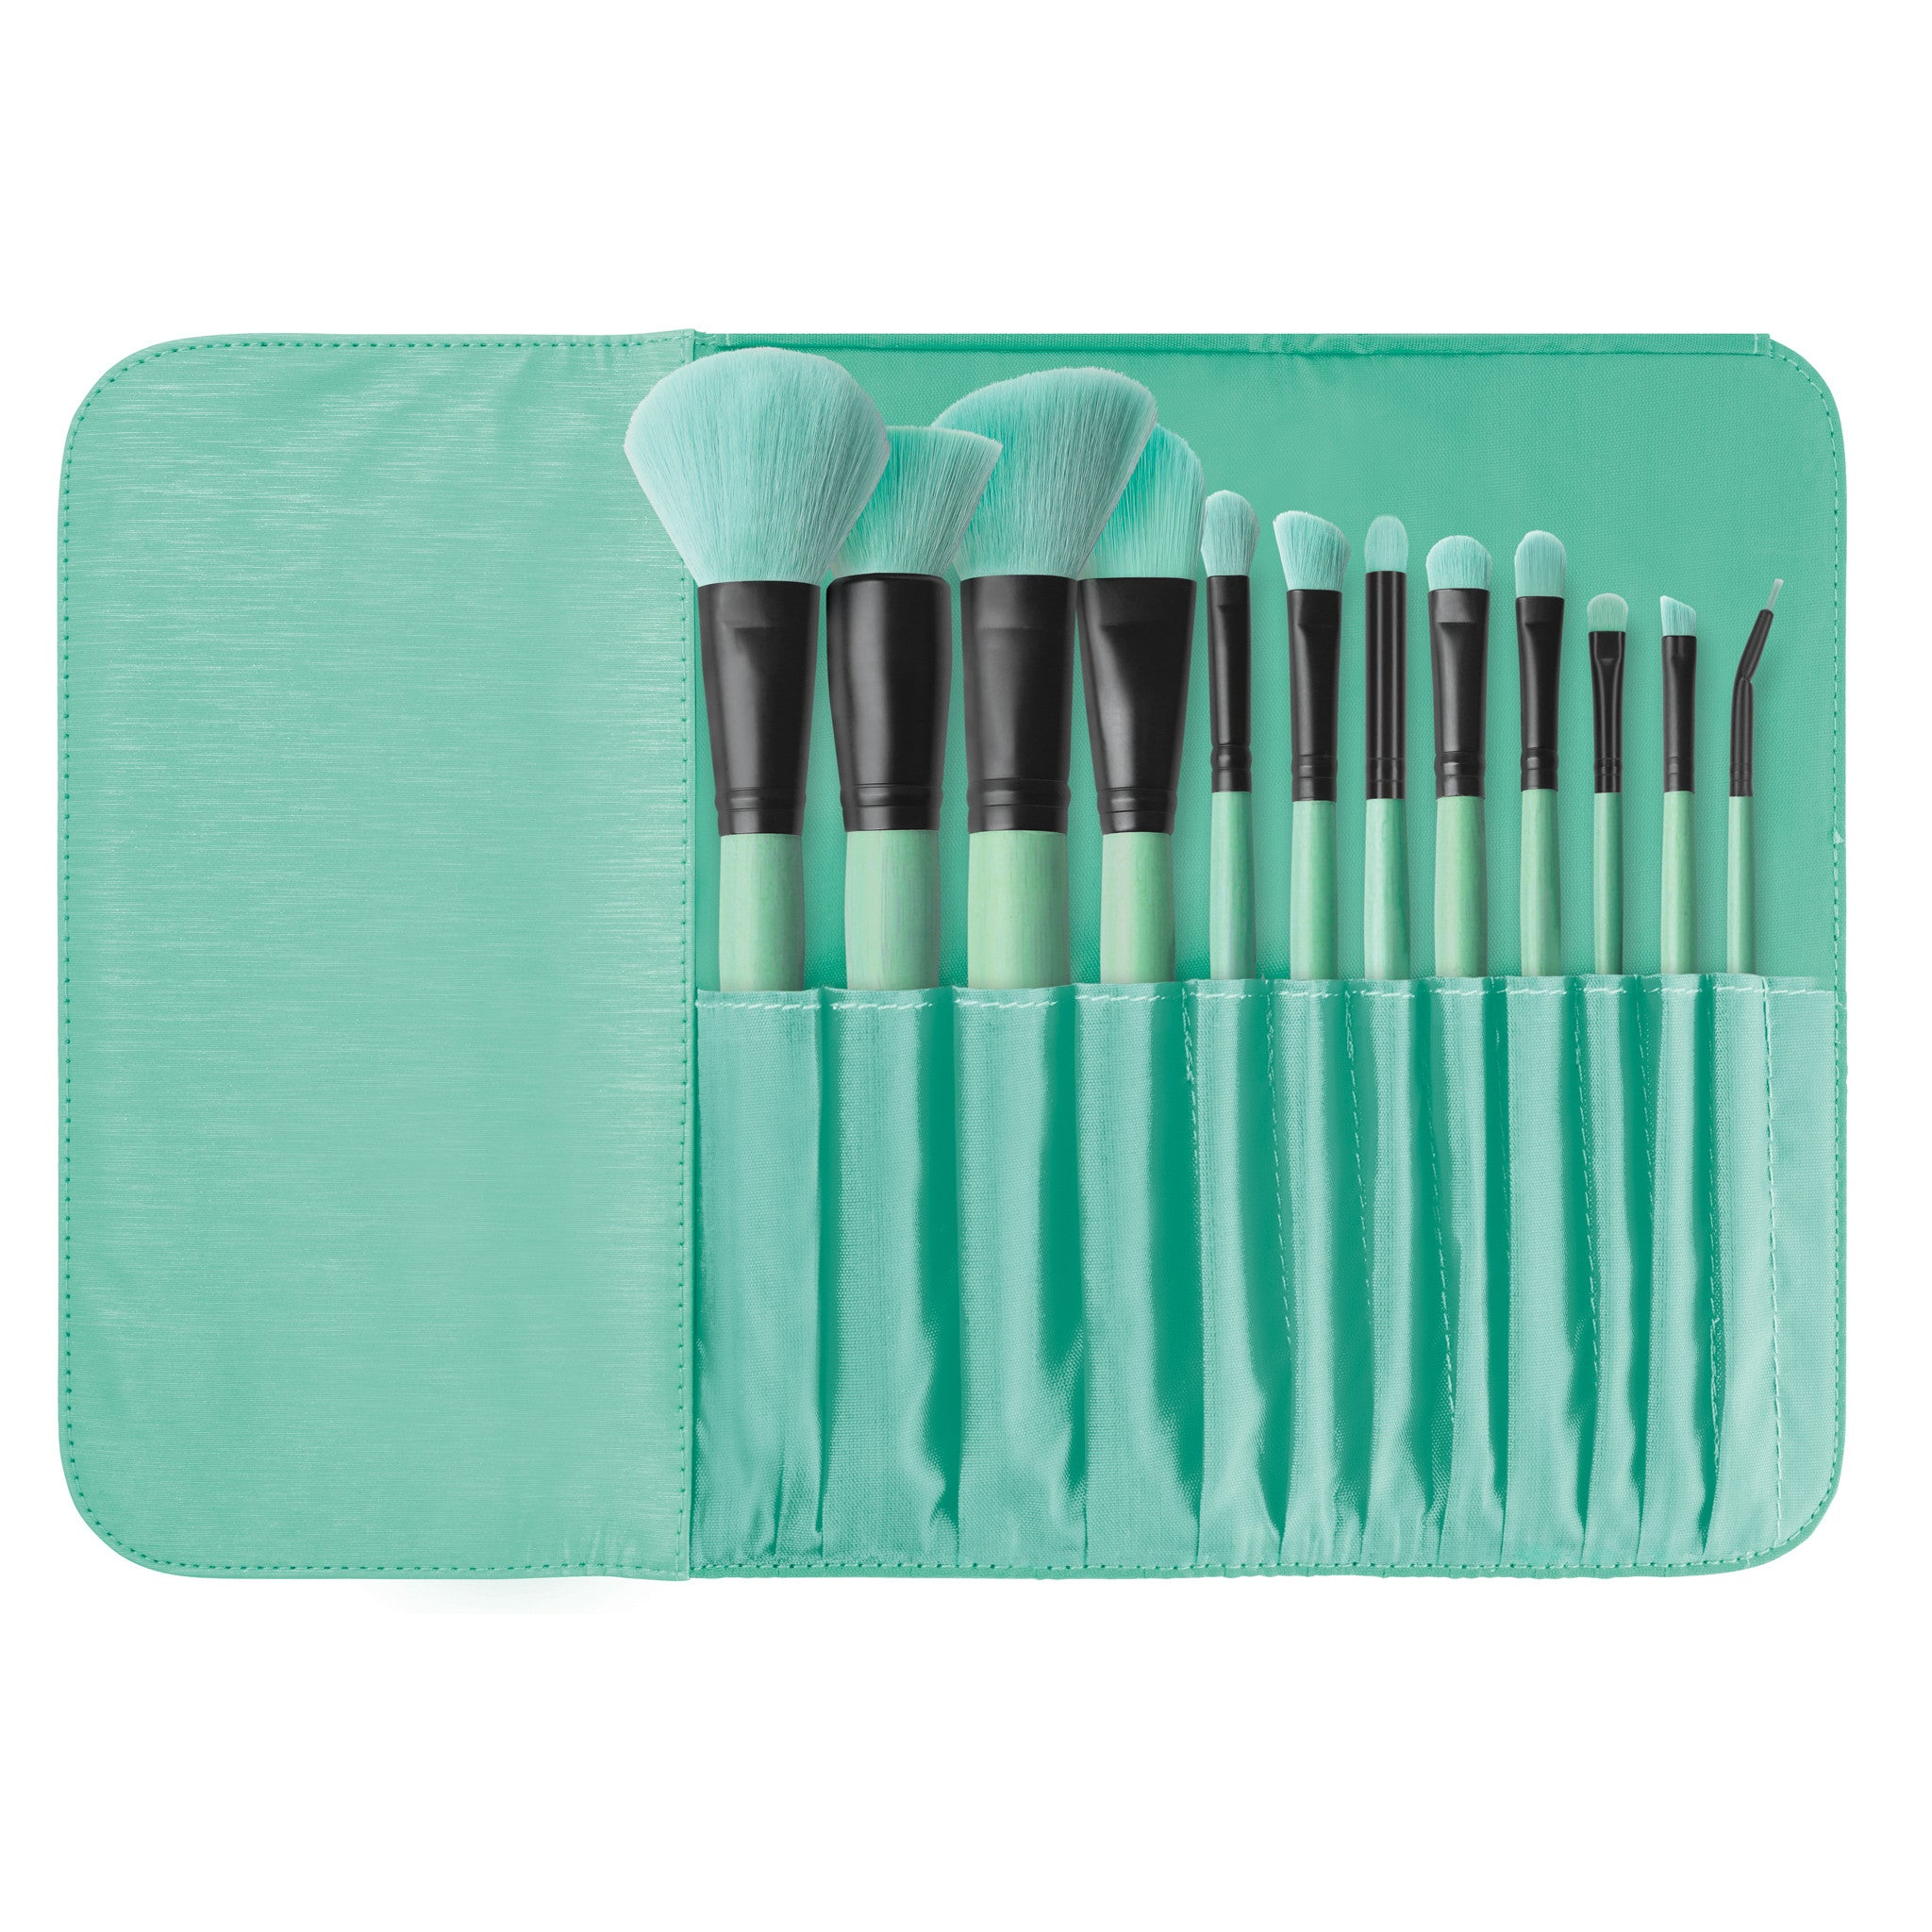 Brush Affair Collection 12 Piece Makeup Brush Set in Minty Green By Coastal Scents